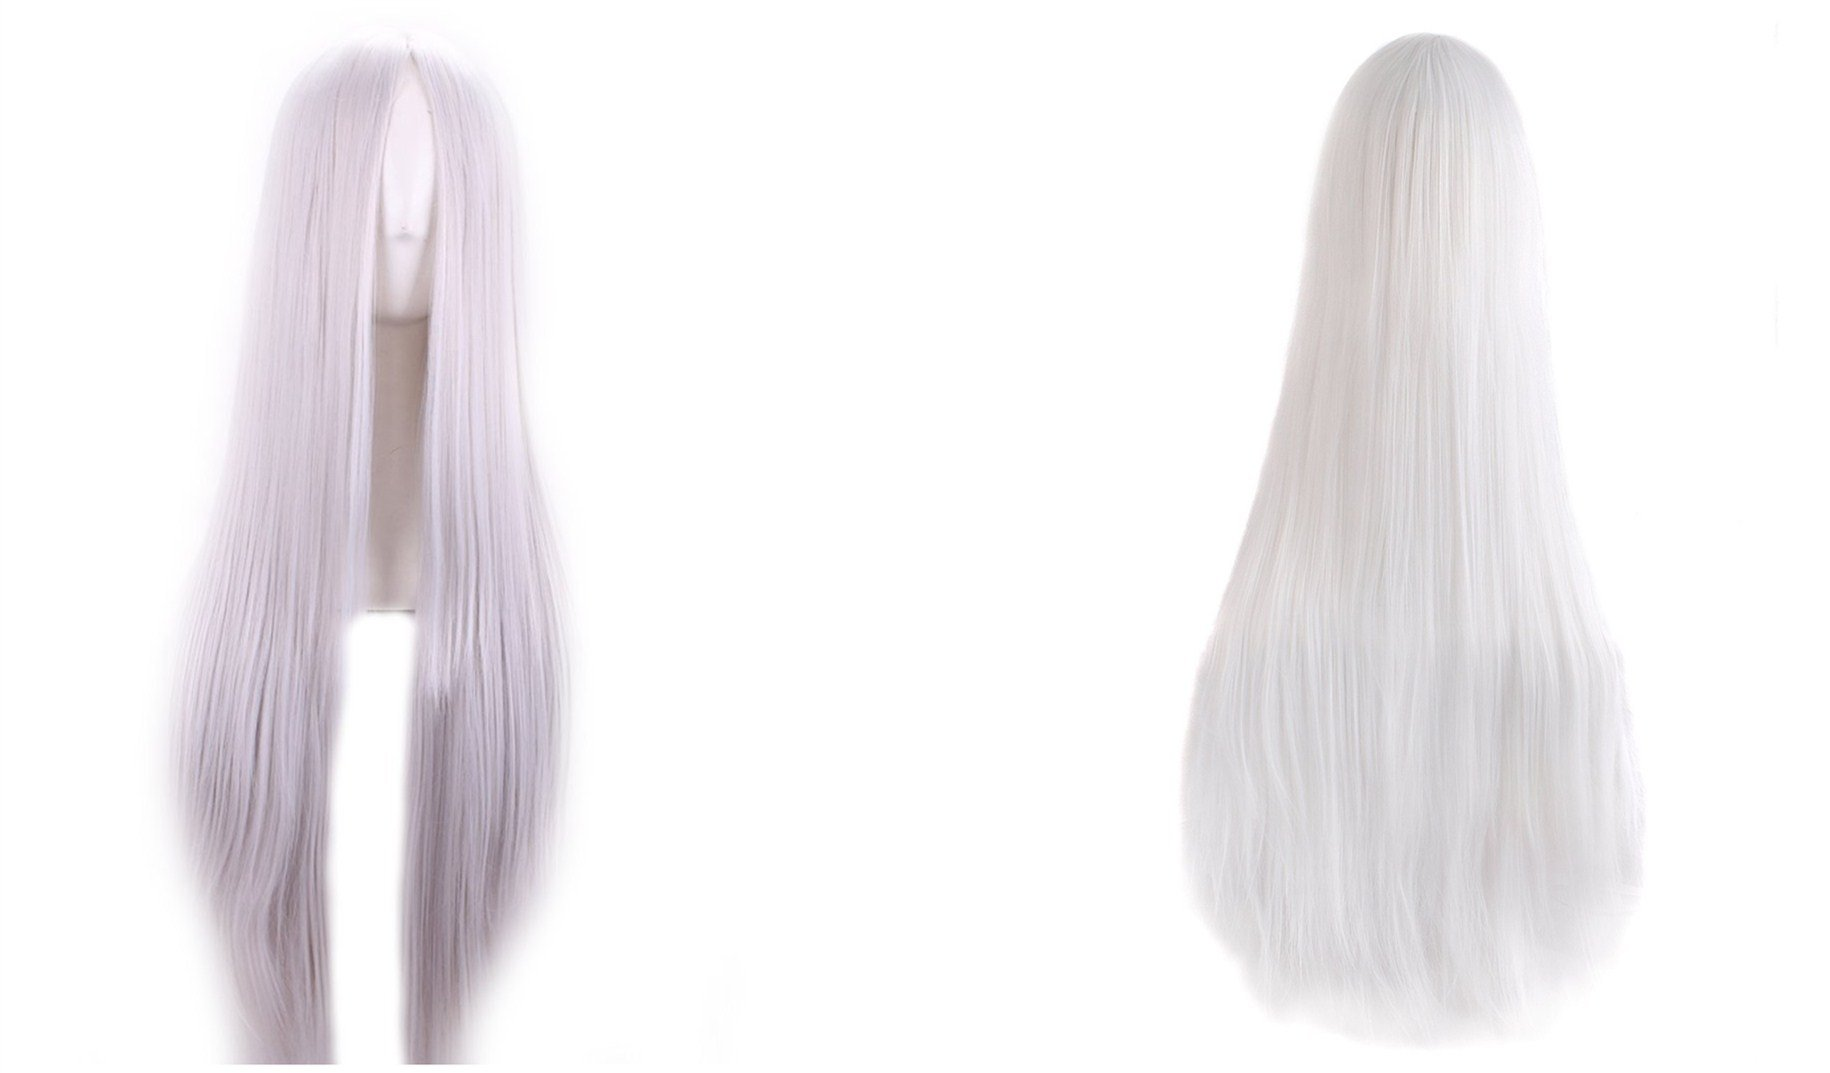 VIMIKID 30'' 75cm Long Straight White Middle Parting Heat Resistant Synthetic Cosplay Costume Party Hair Wig by VIMIKID (Image #3)